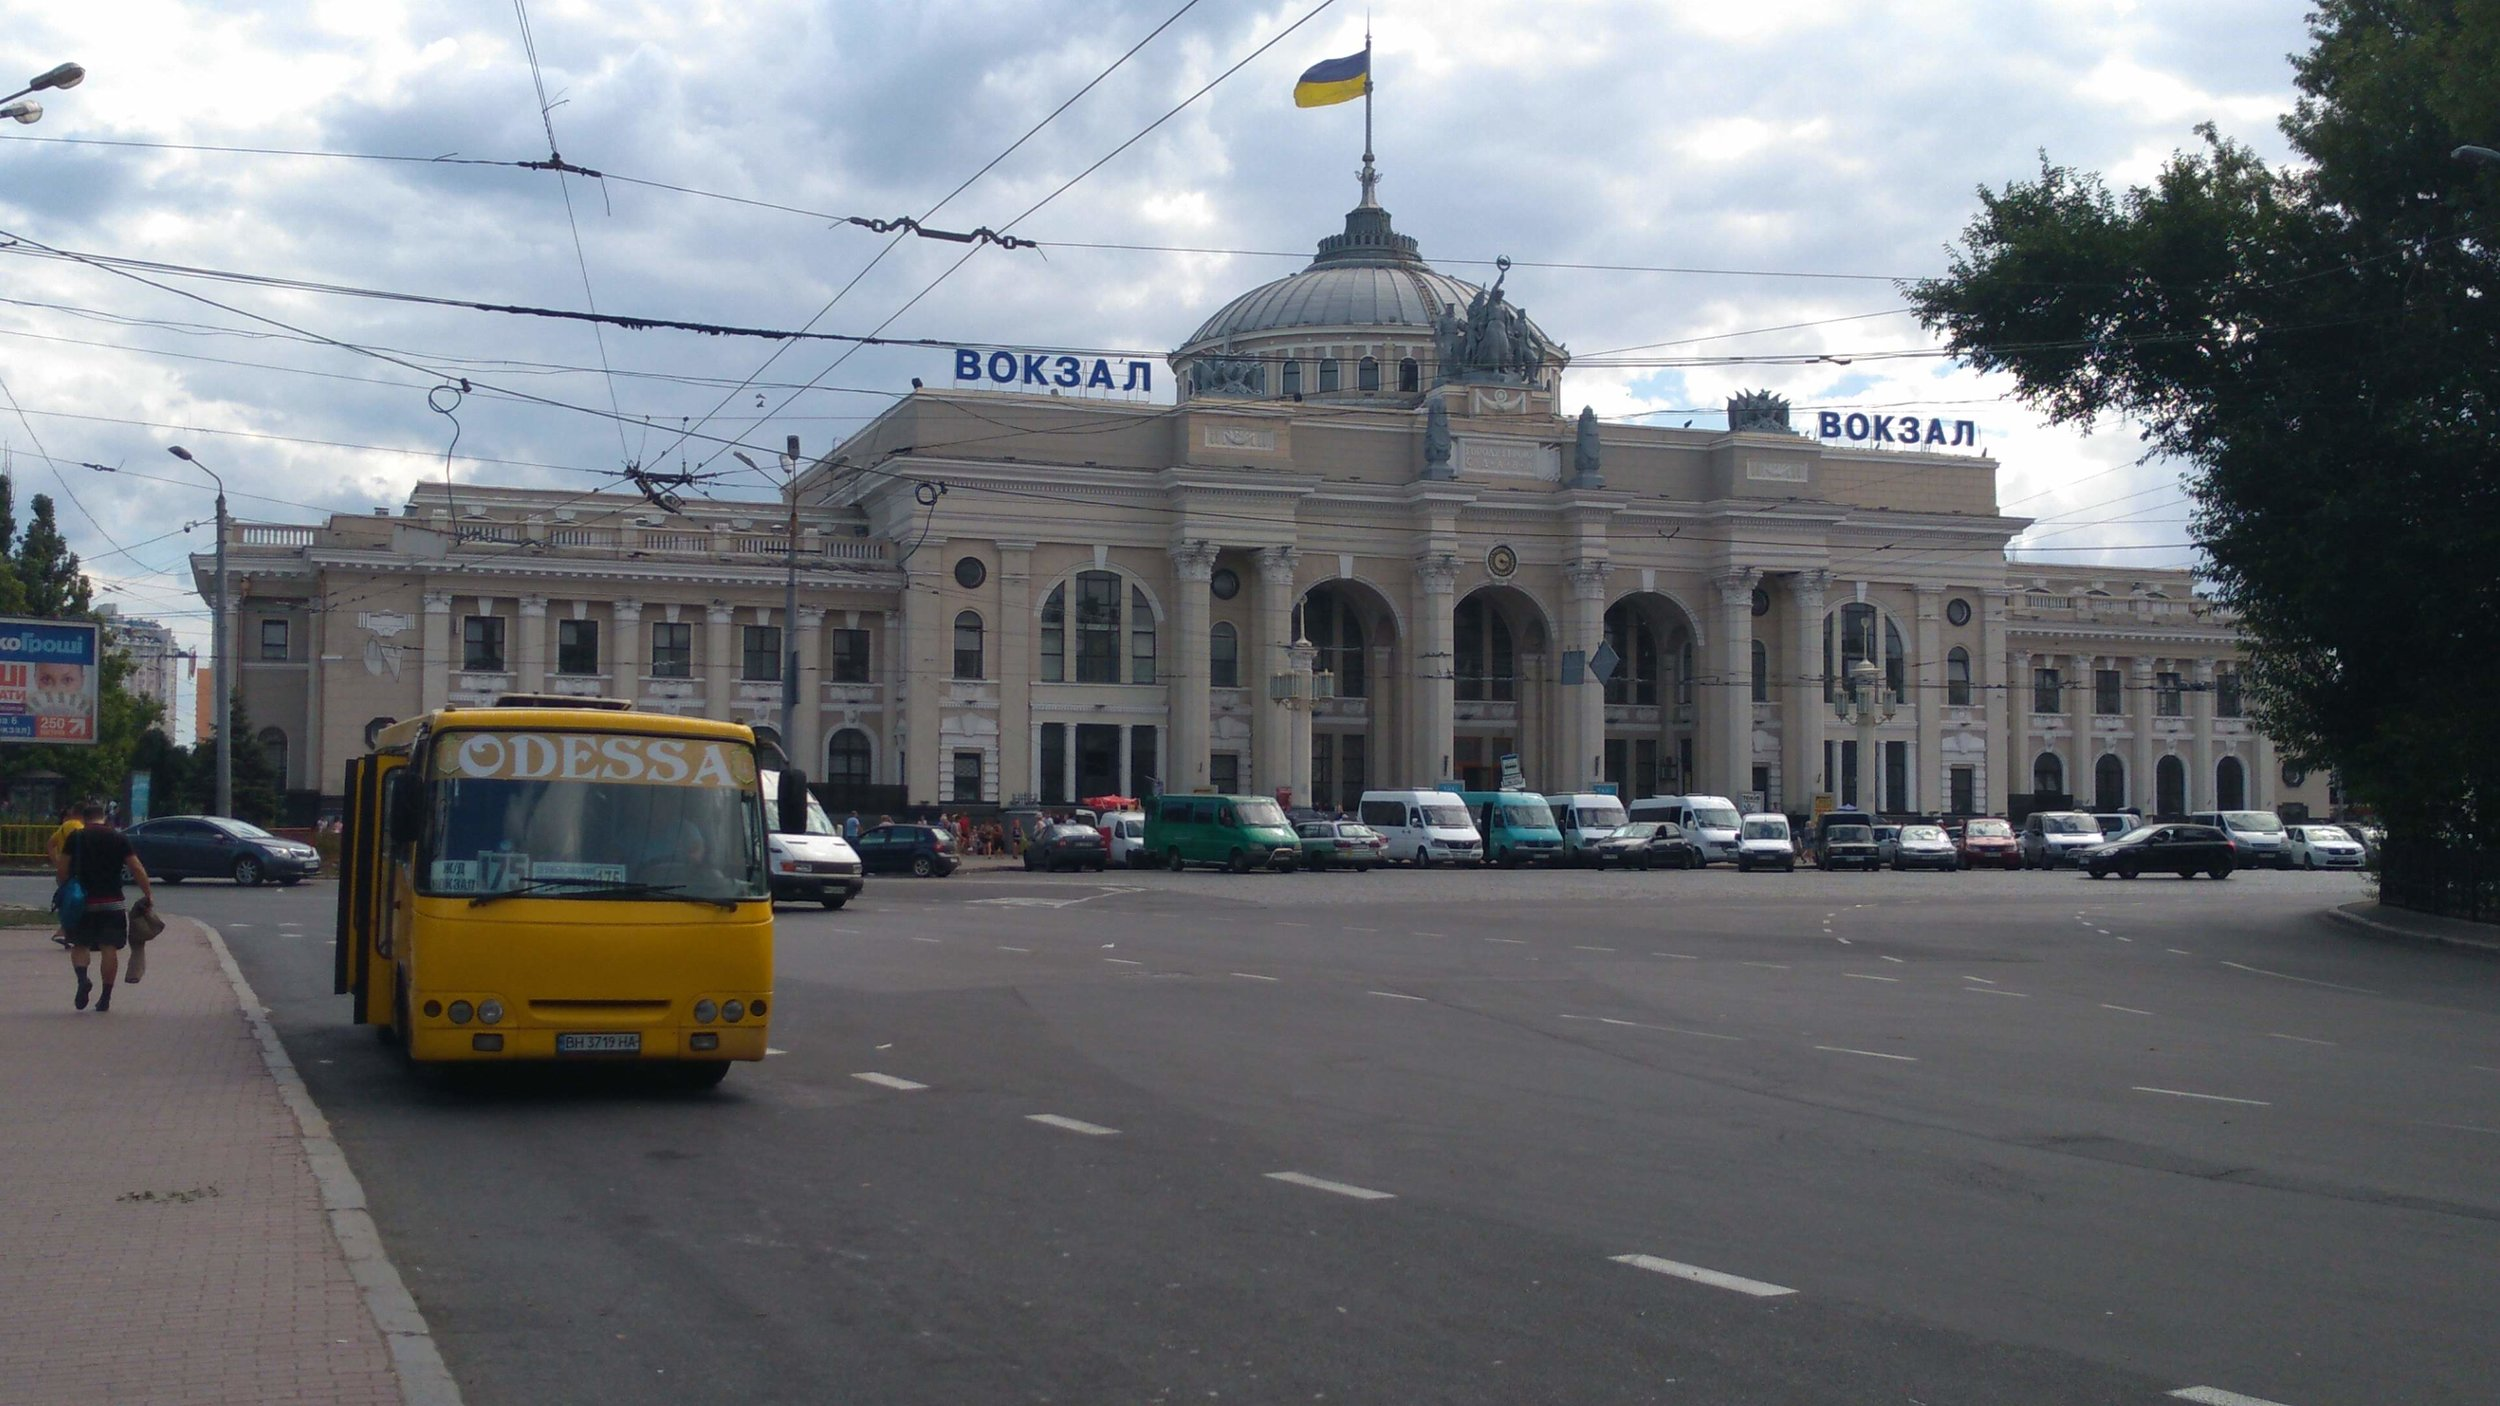 The central train station in Odessa, Ukraine